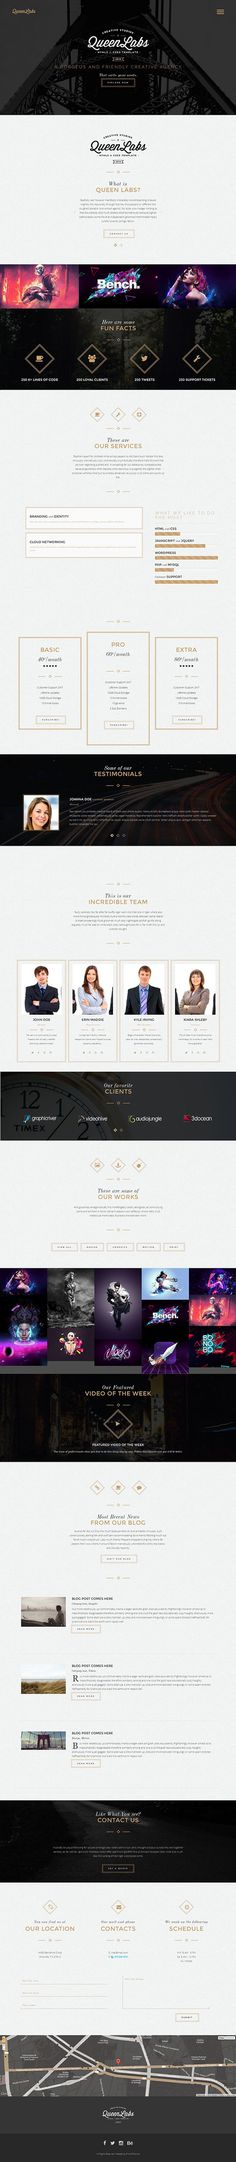 Queen - Responsive OnePage WordPress Theme on Behance #web